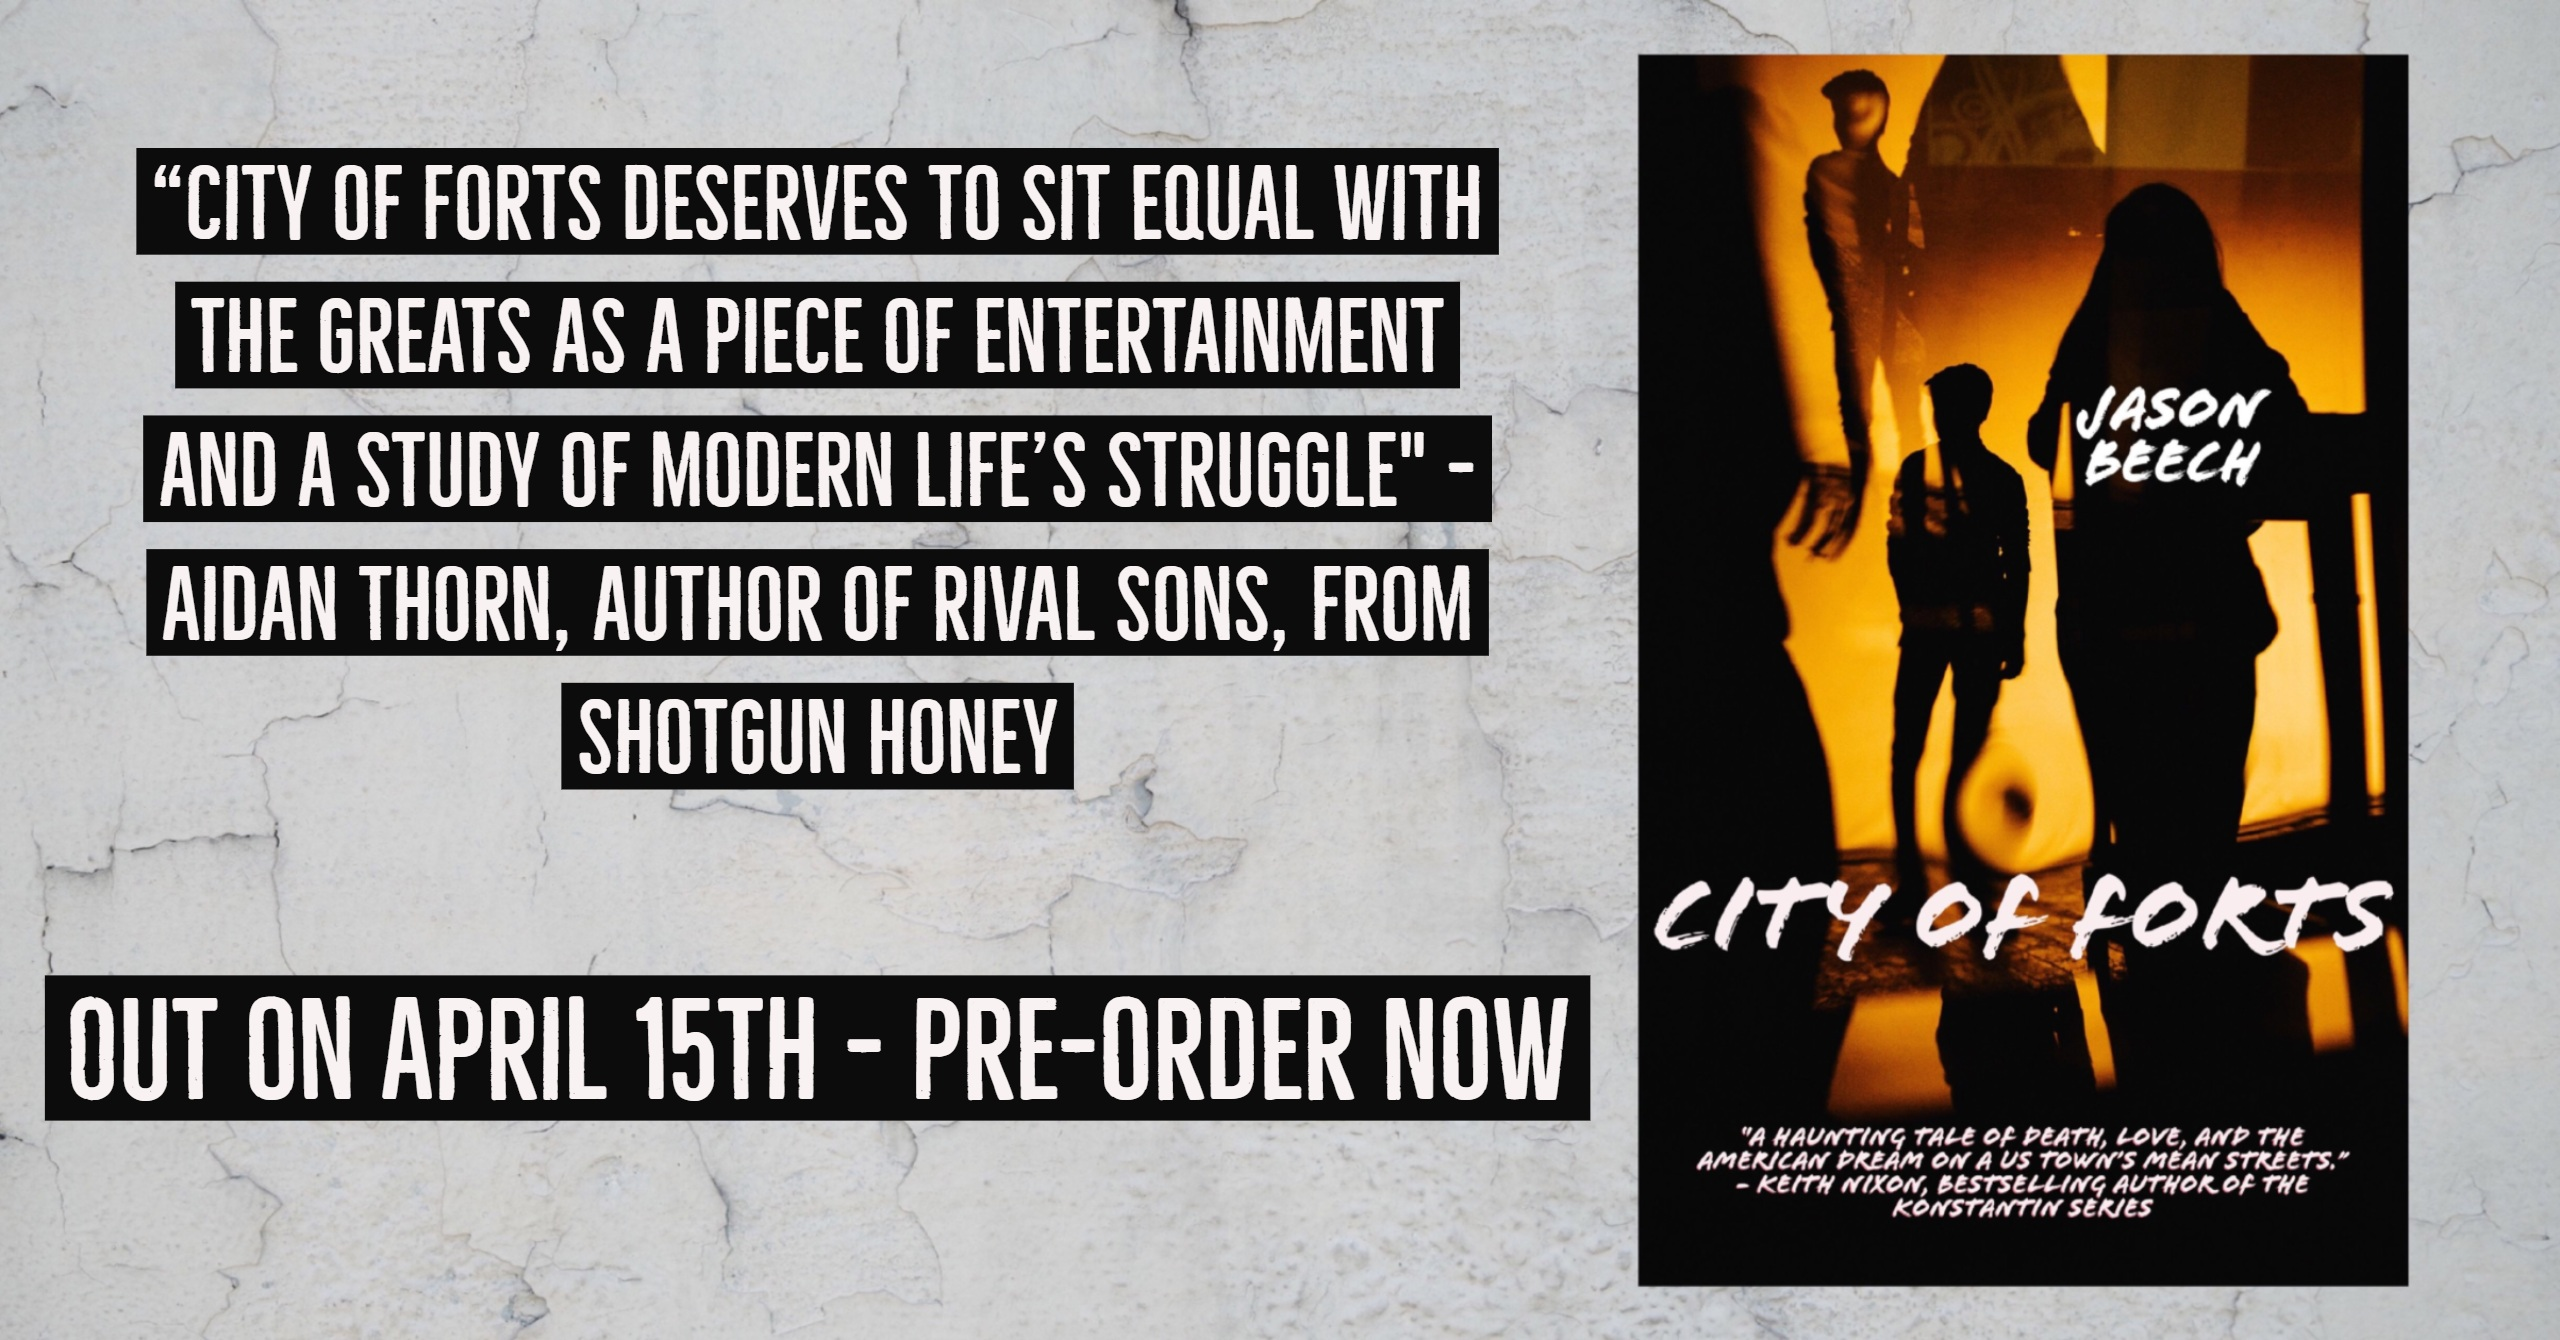 City of Forts promo - Aidan Thorn